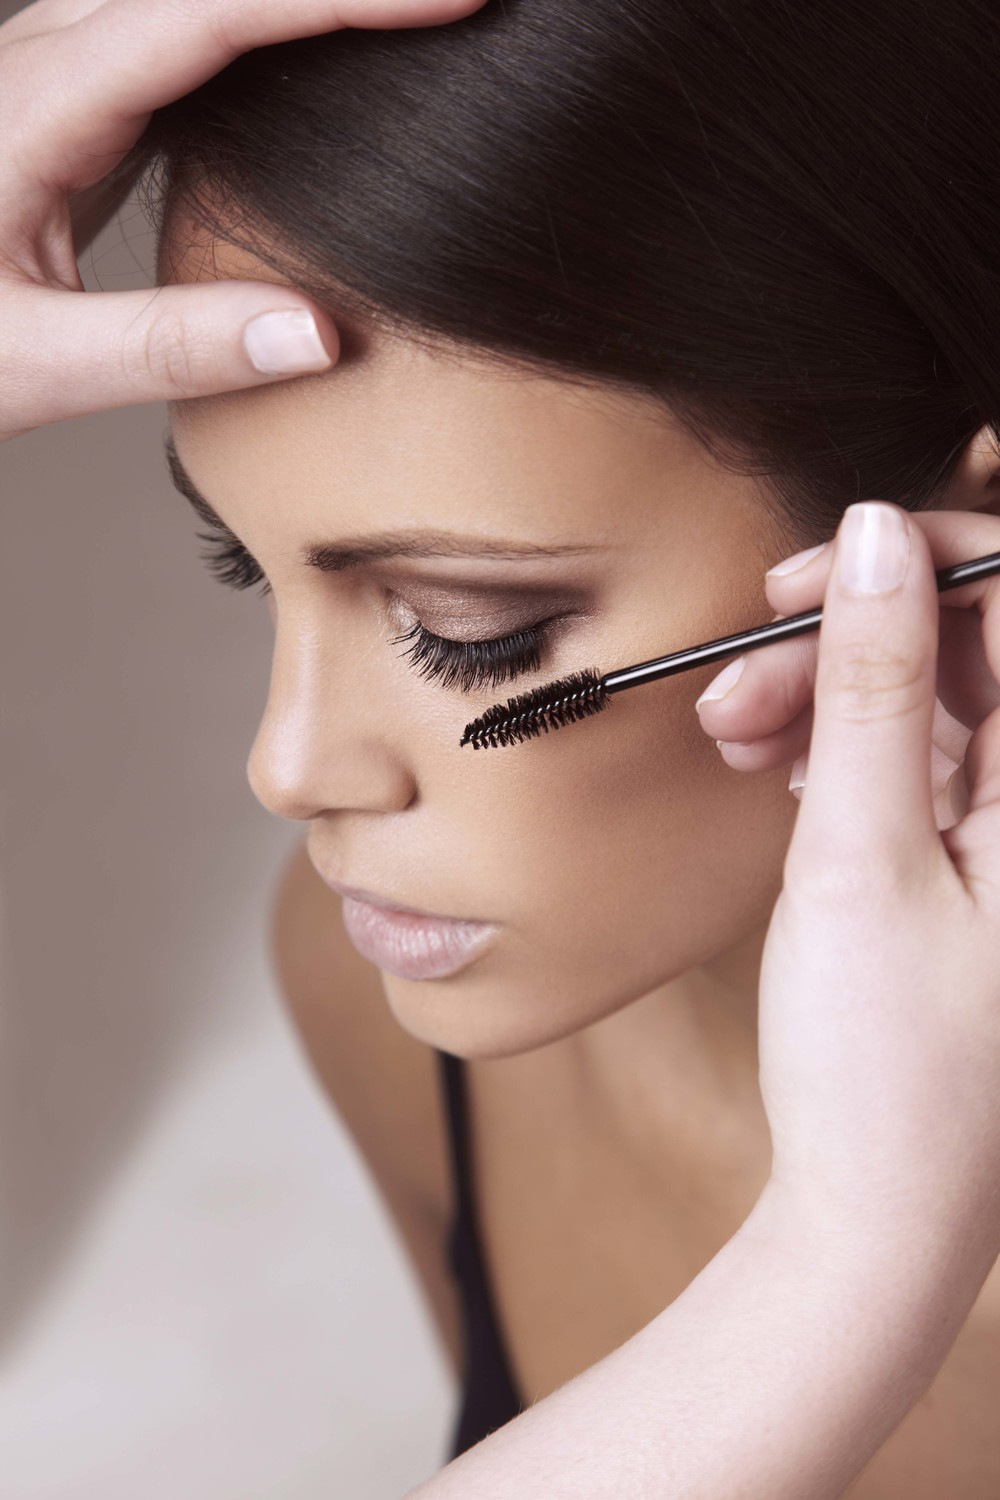 TANYA LASHWEAR - a 3/4 demi-lash for the perfect cat eye.